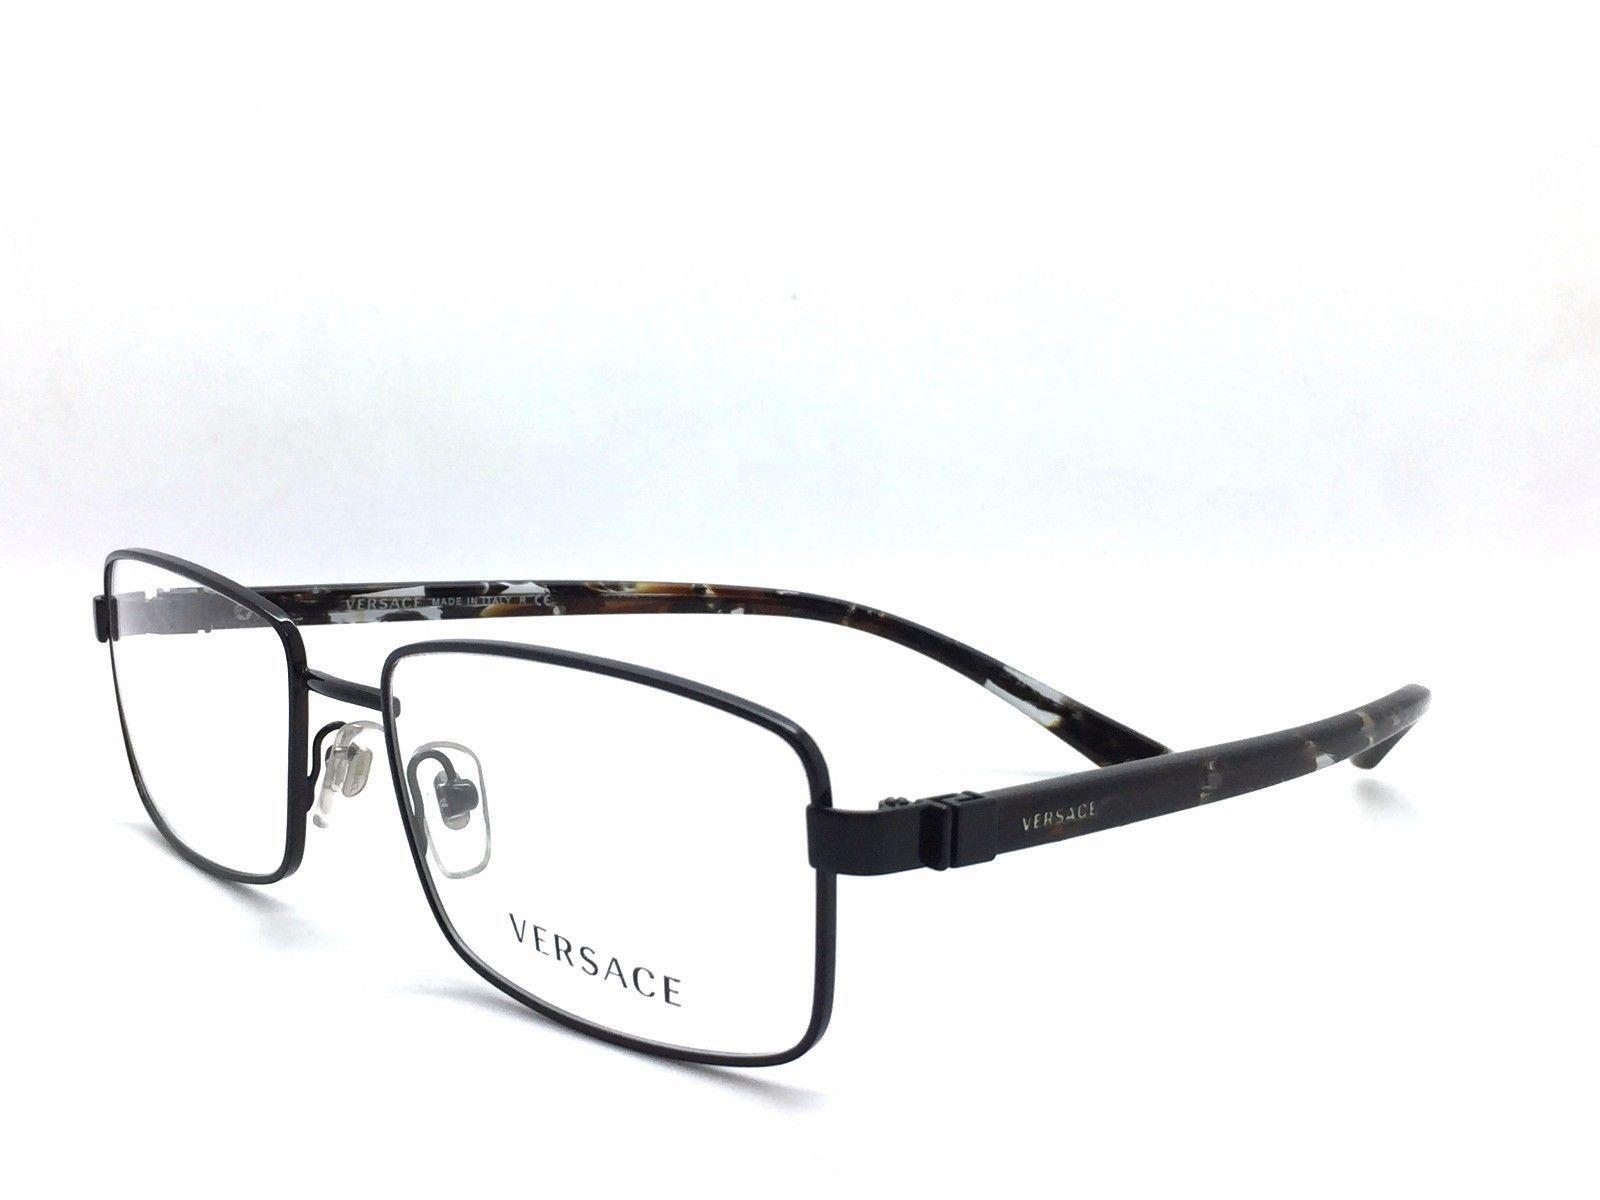 19c041ac3ad7 New VERSACE Eyeglasses MOD.1212 1009 55-17 and 50 similar items. 57